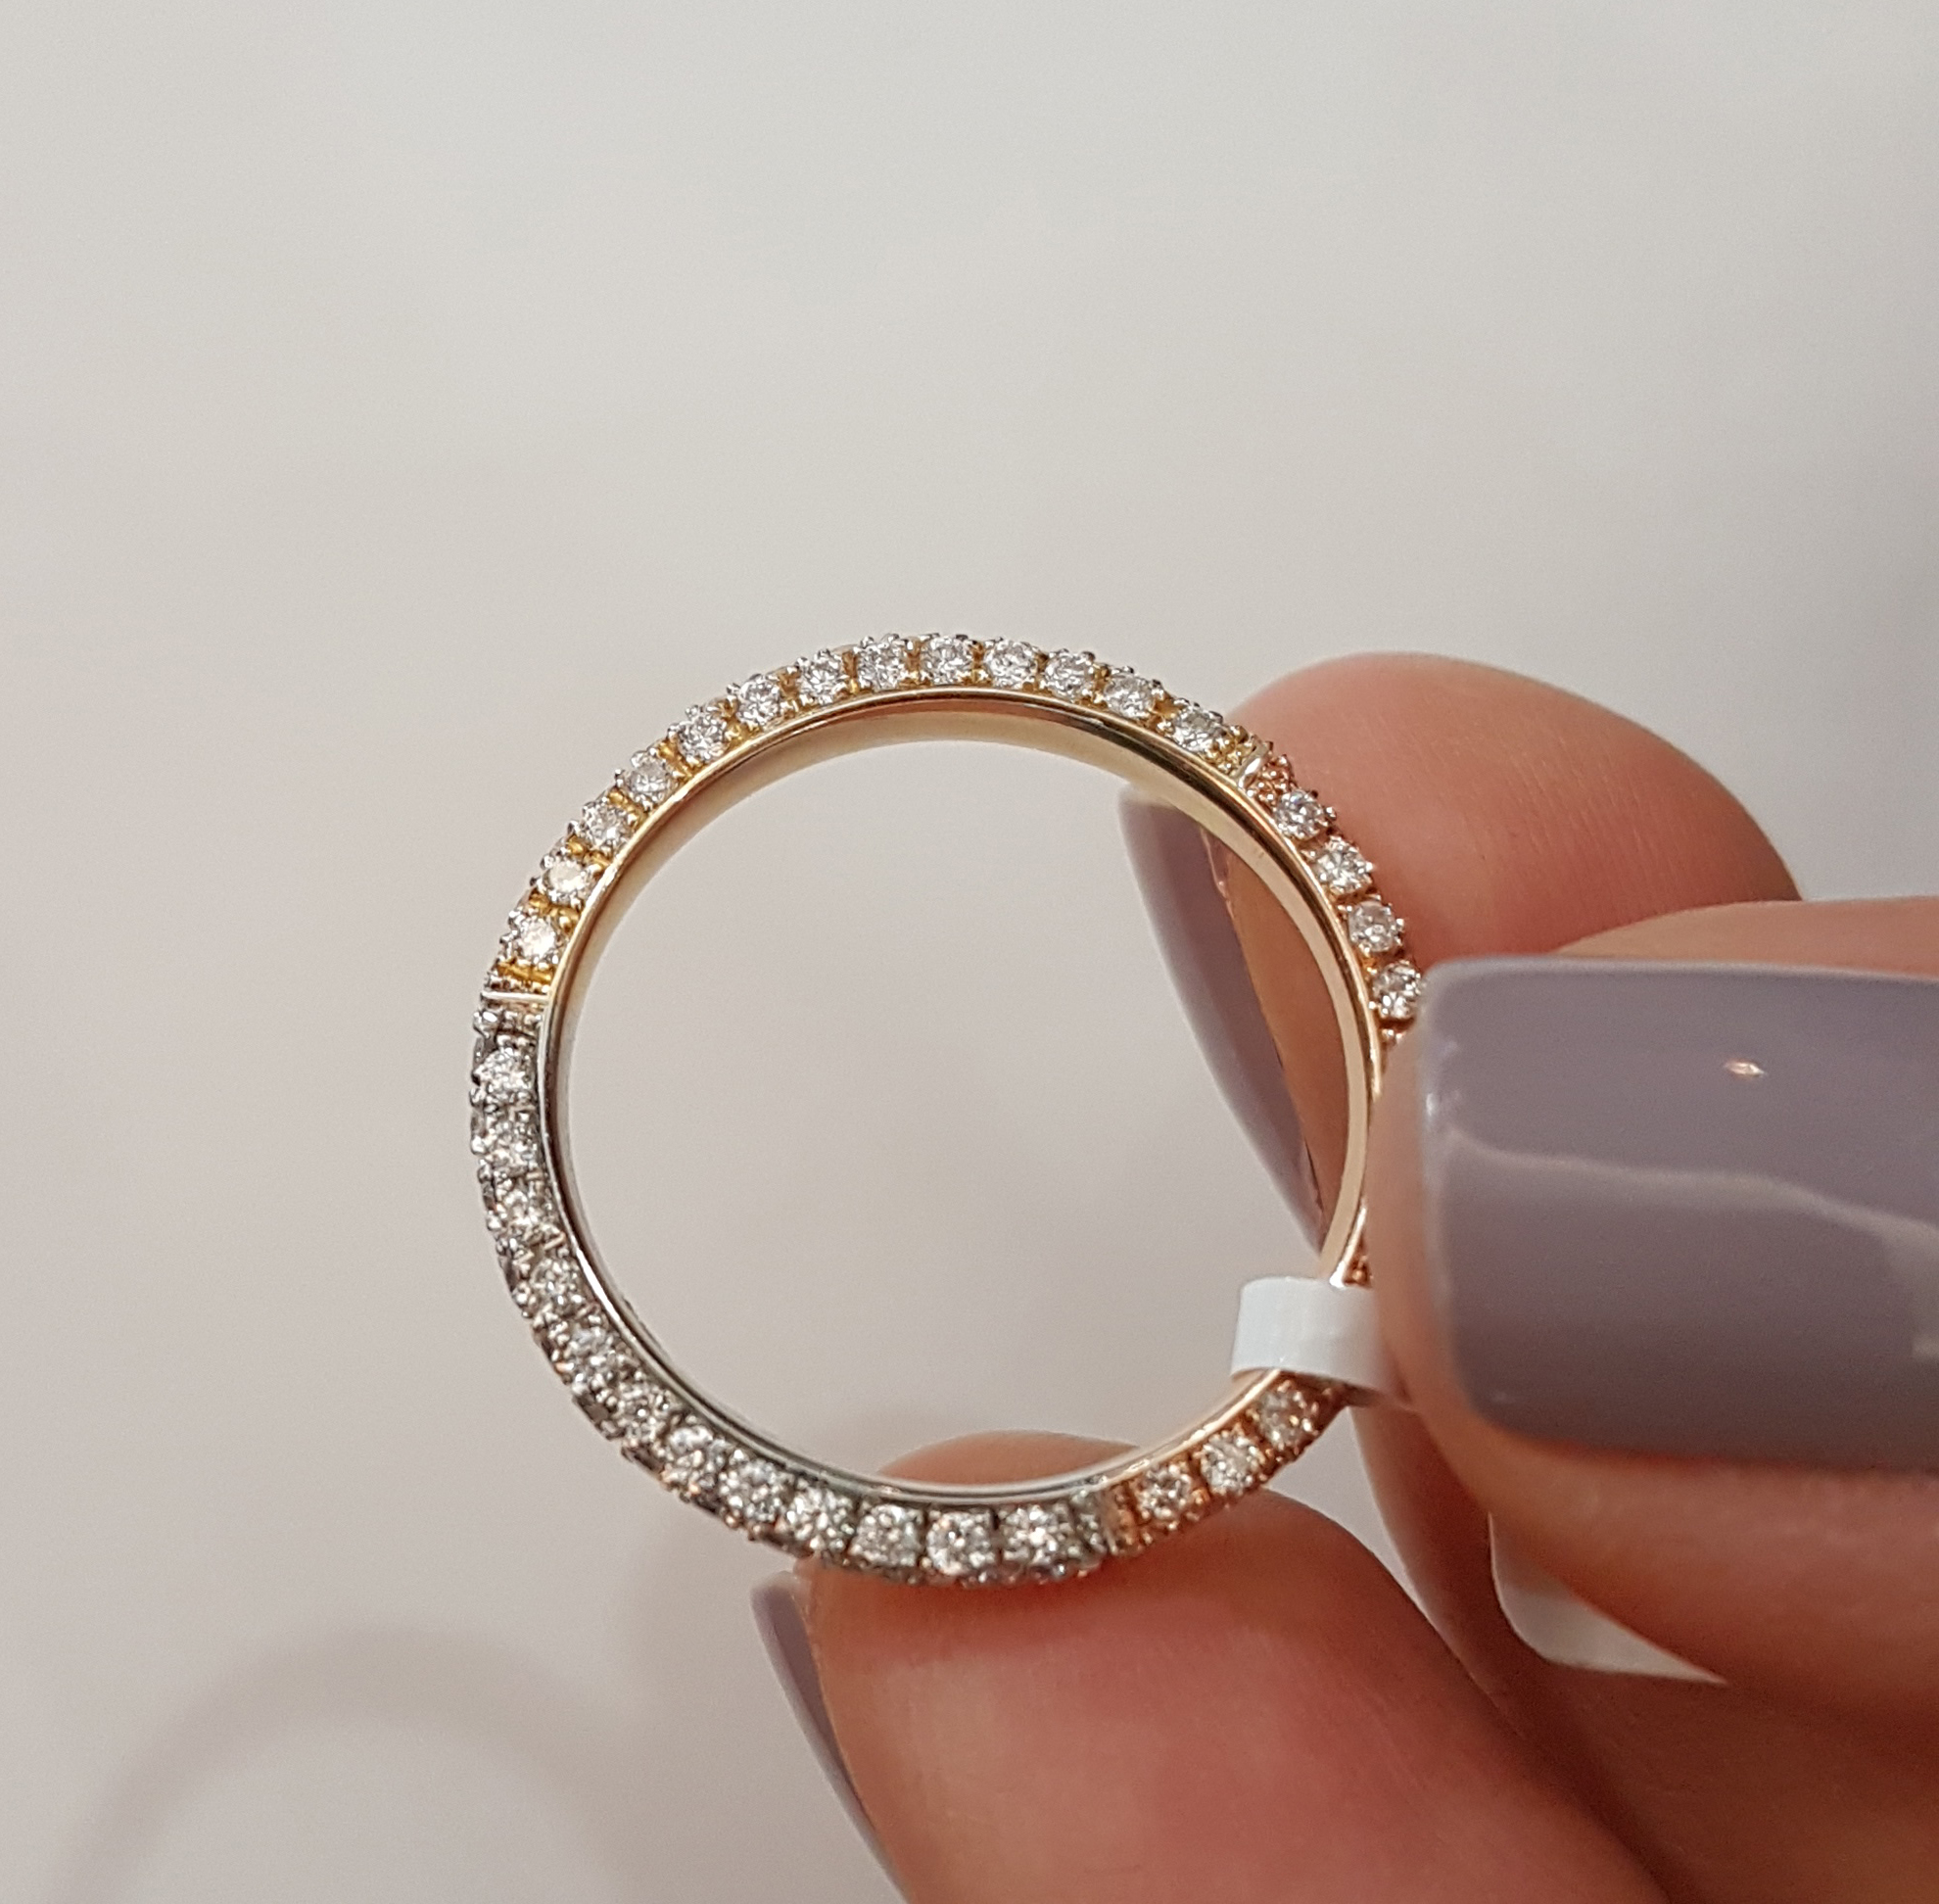 zirconia item double cubic round men fair rings rose jewelry for from color in and carat elegant silver plated zircon anel gold engagement fashion ring classic wholesale cut man wedding women crystal